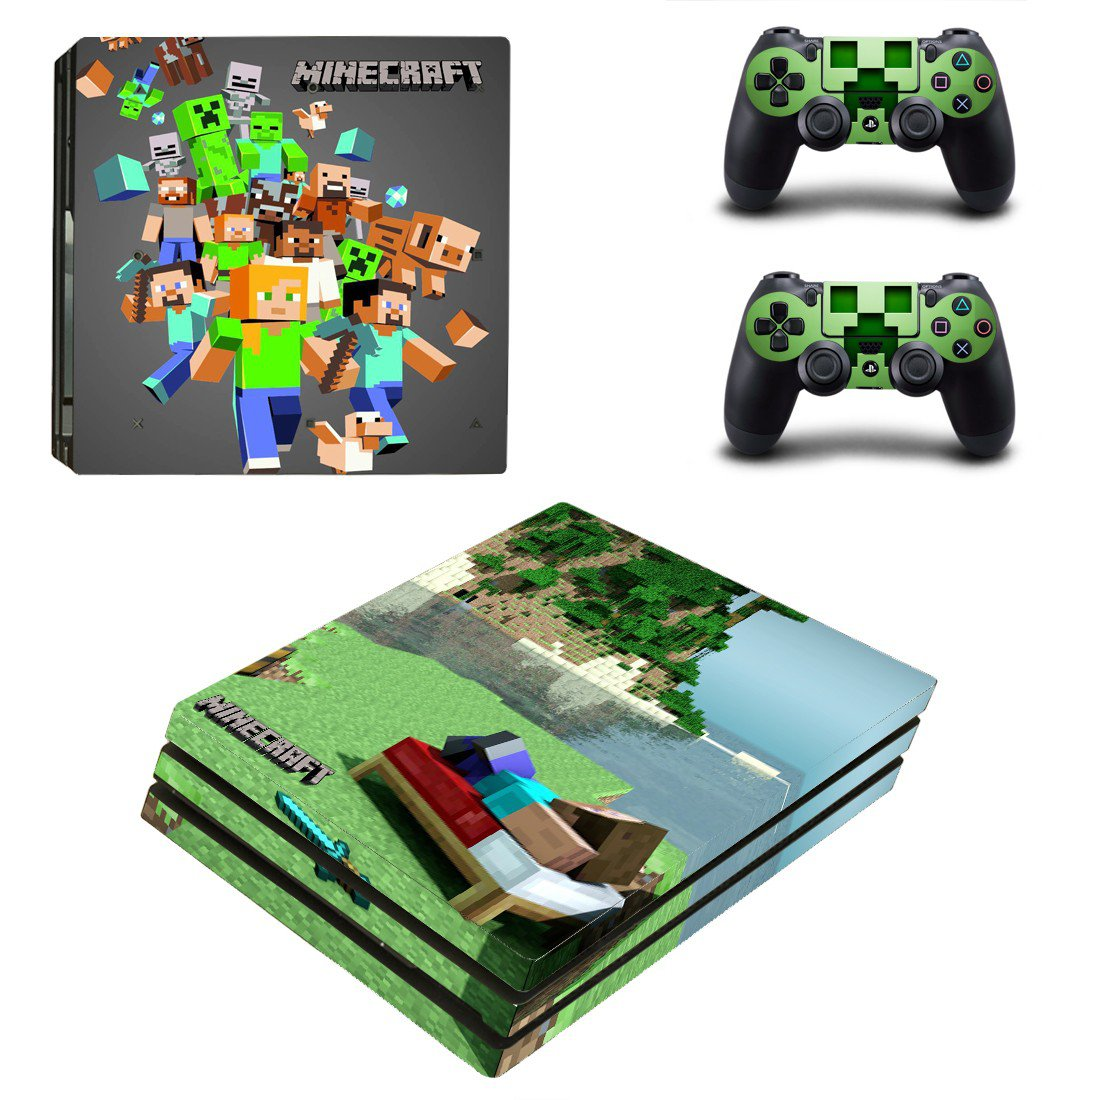 Minecraft decal skin sticker for PS4 Pro console and controllers